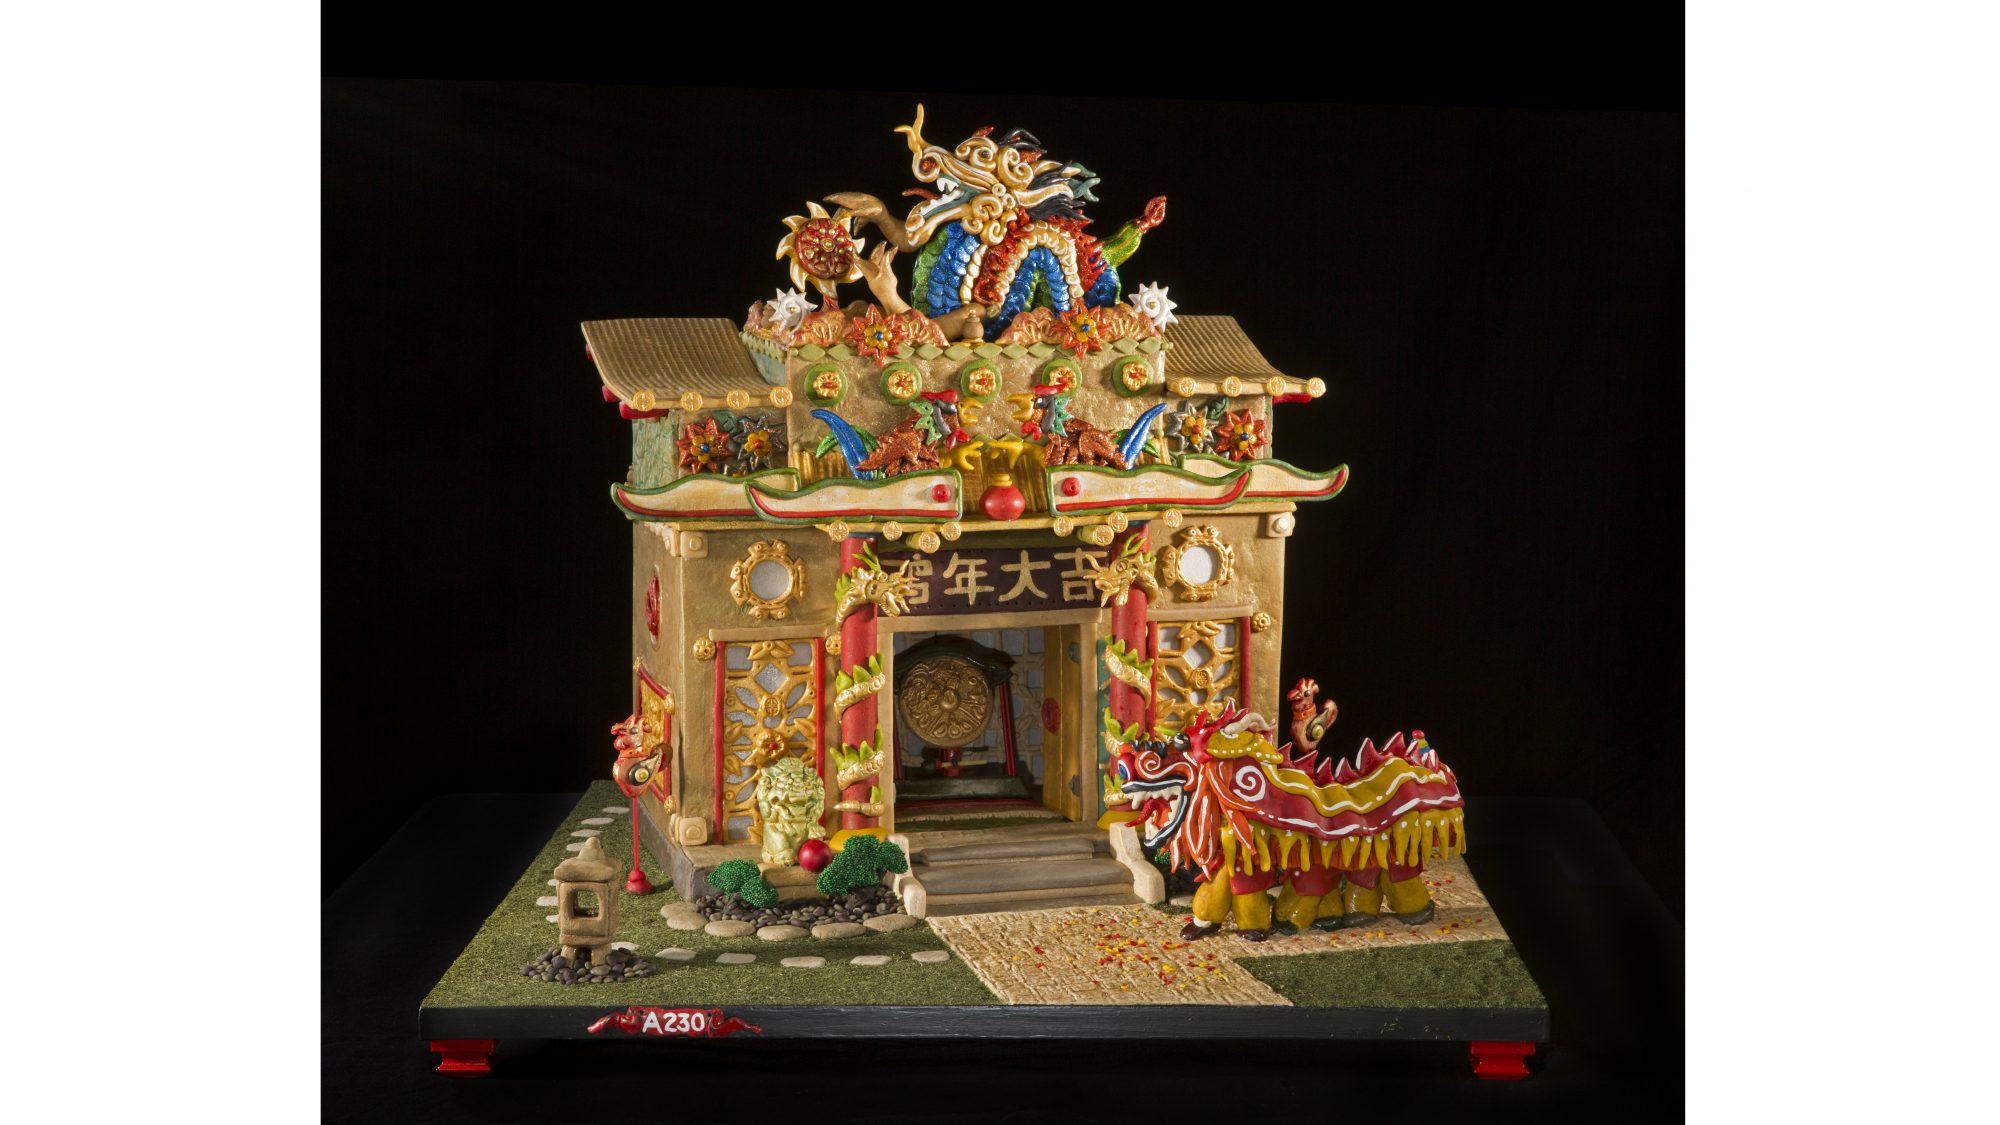 2016 Gingerbread House Competition Top 10 Finalist